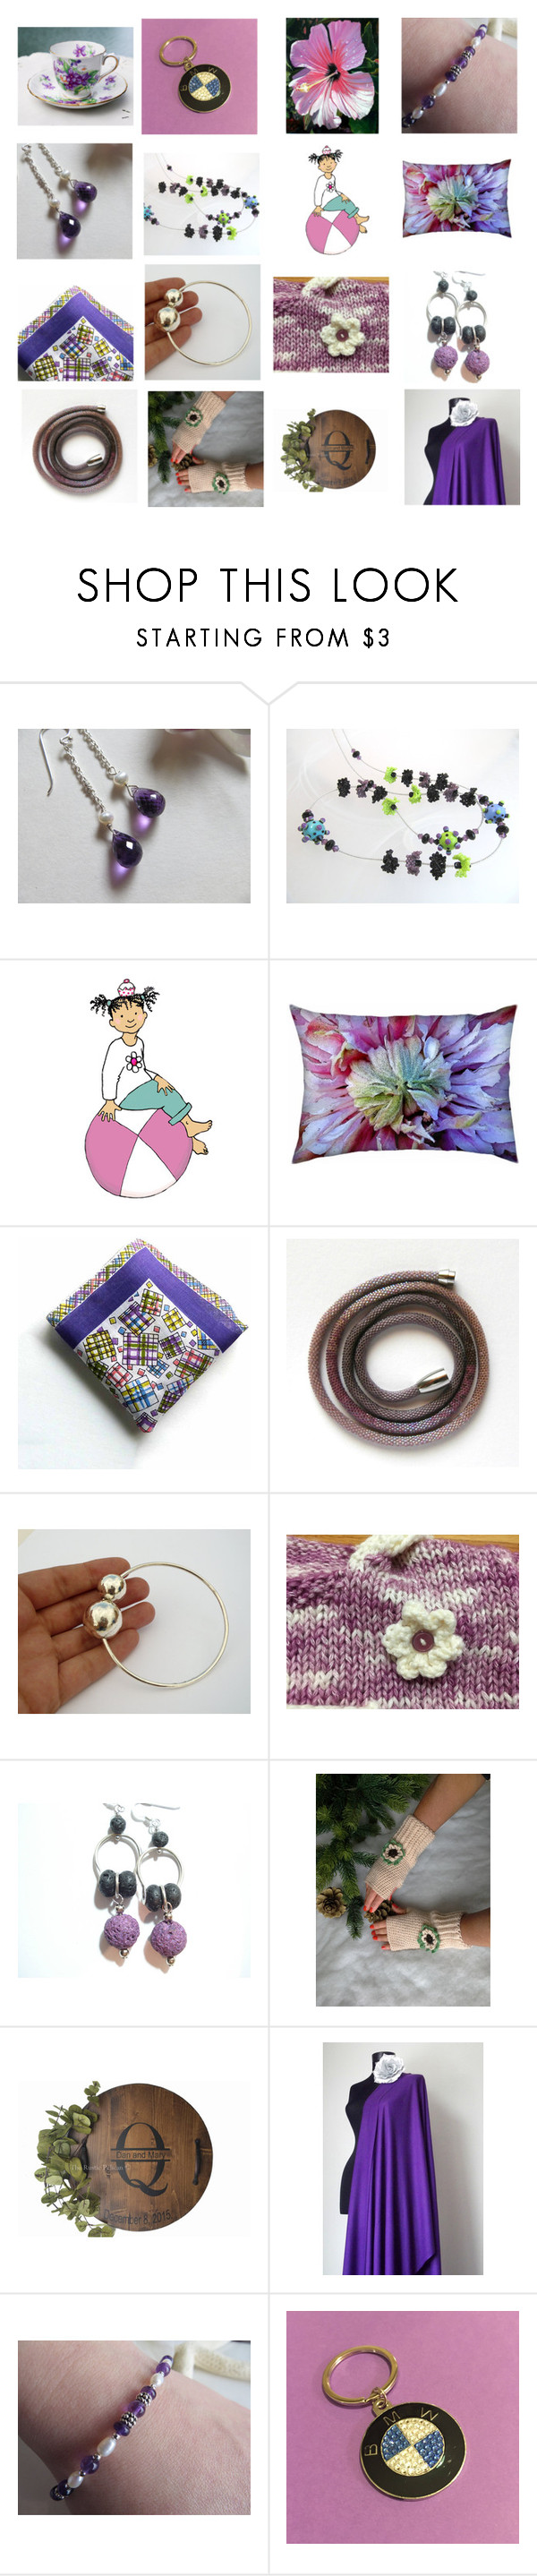 """""""Thoughtful Gifts - uniquely vintage & handmade"""" by seasidecollectibles ❤ liked on Polyvore featuring BMW and vintage"""